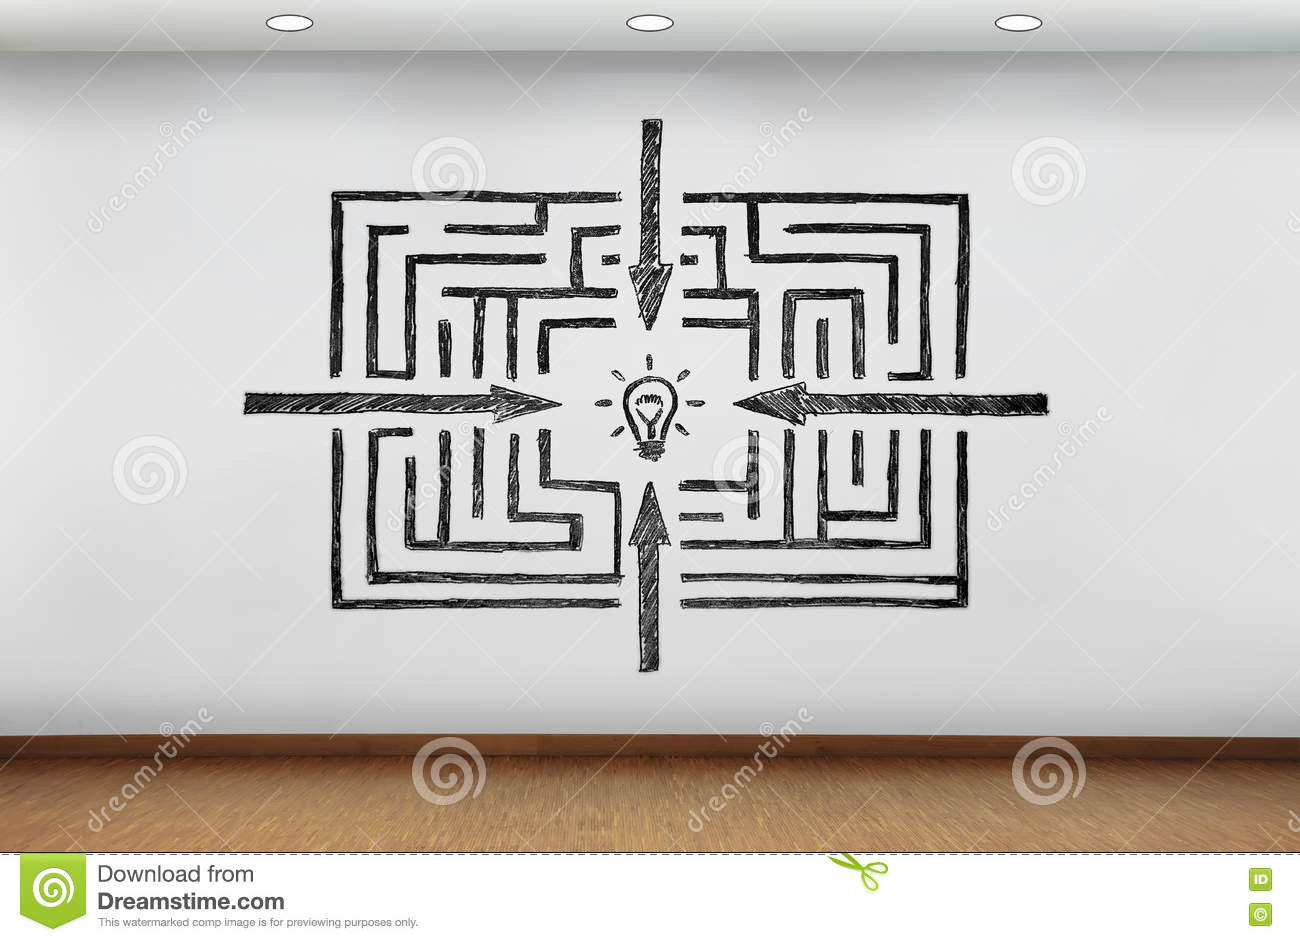 Labyrinthe au dessin de succ s sur le mur illustration for Dessin sur mur interieur